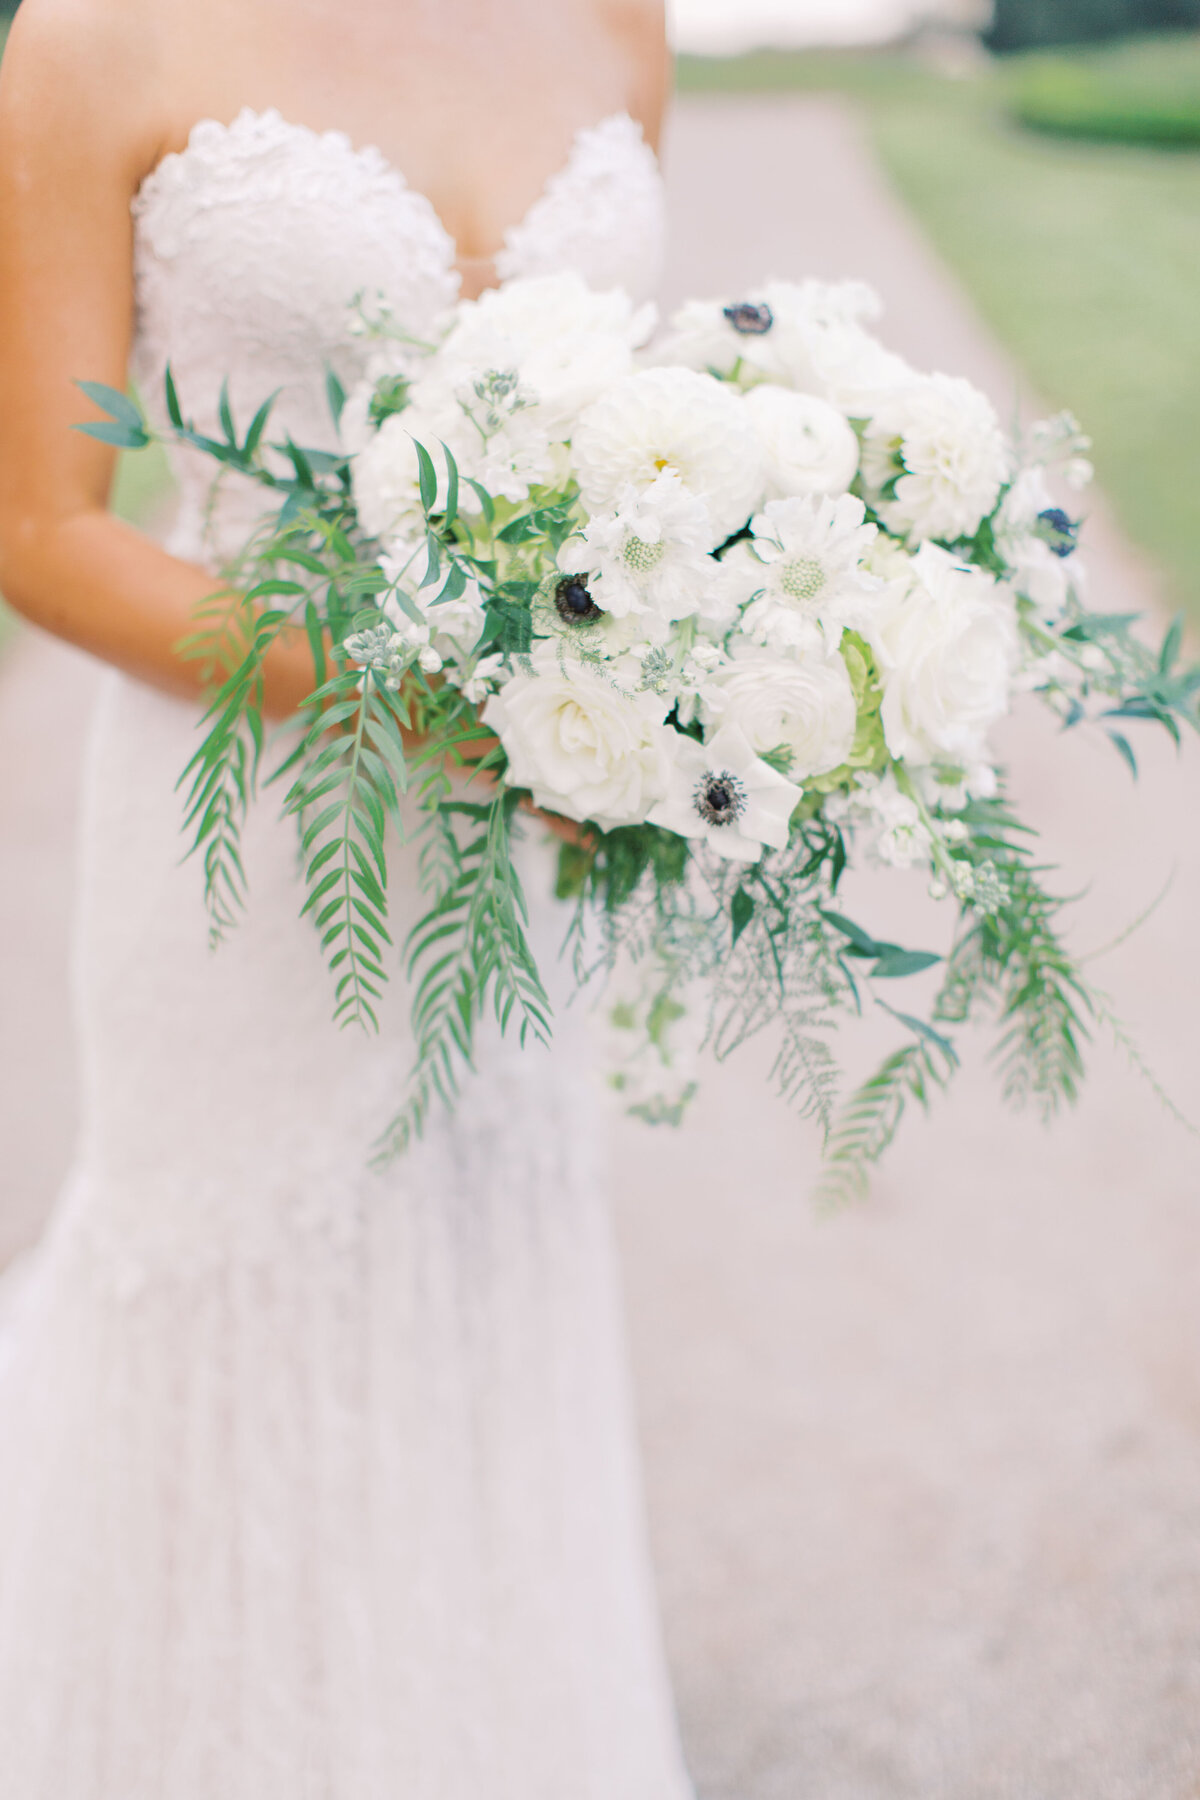 Melton_Wedding__Middleton_Place_Plantation_Charleston_South_Carolina_Jacksonville_Florida_Devon_Donnahoo_Photography__0304